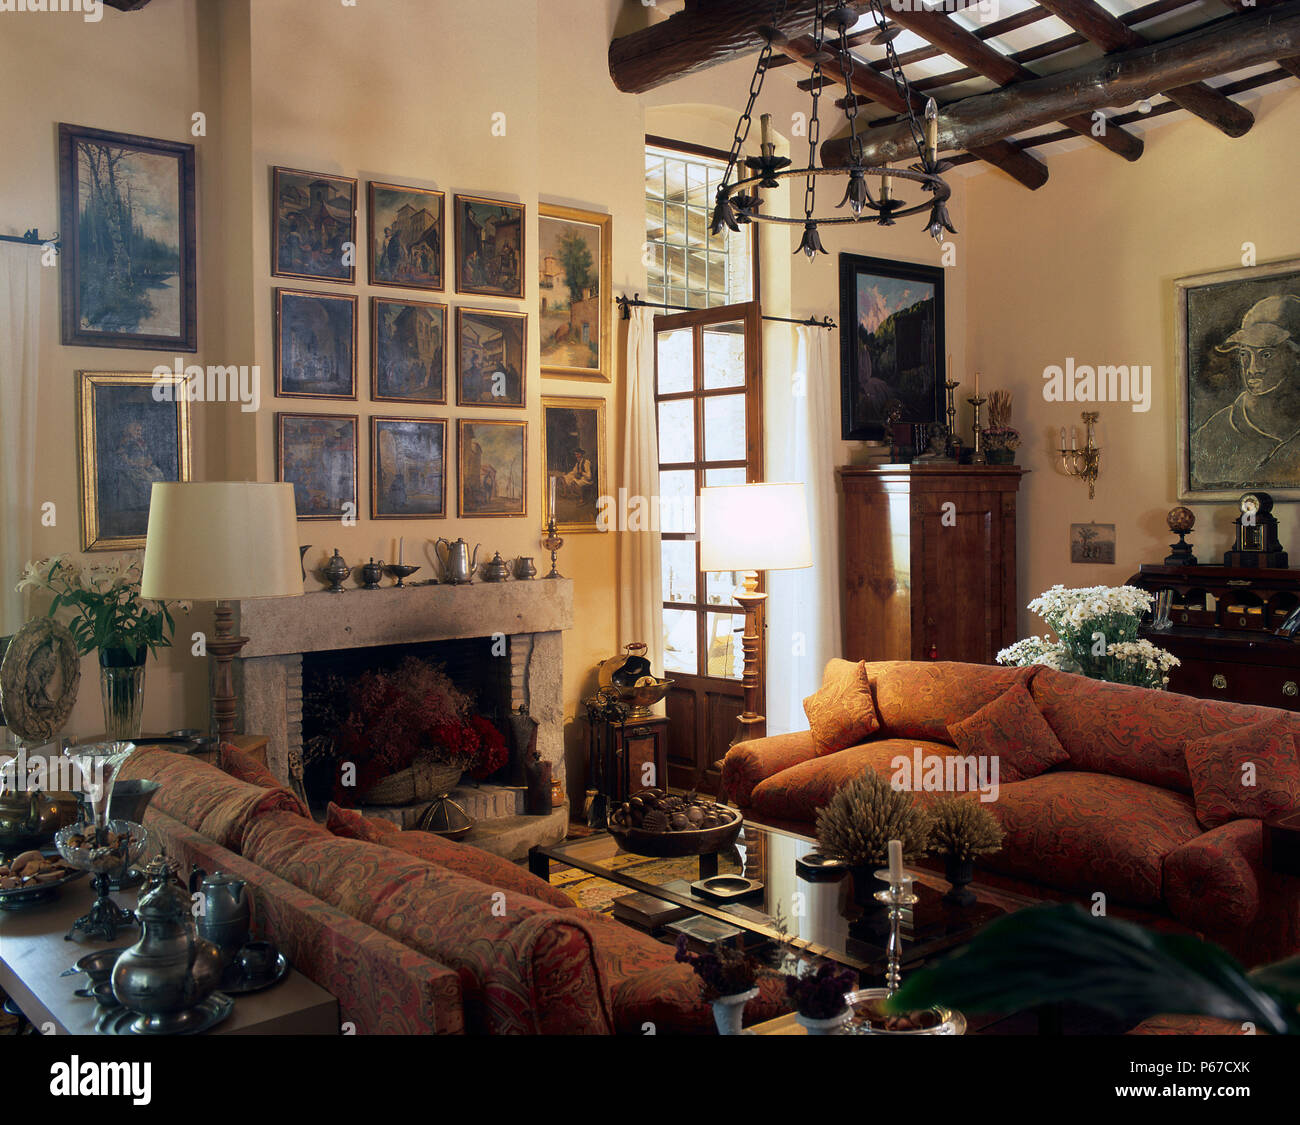 View Of An Organized Living Room Adorned With Paintings